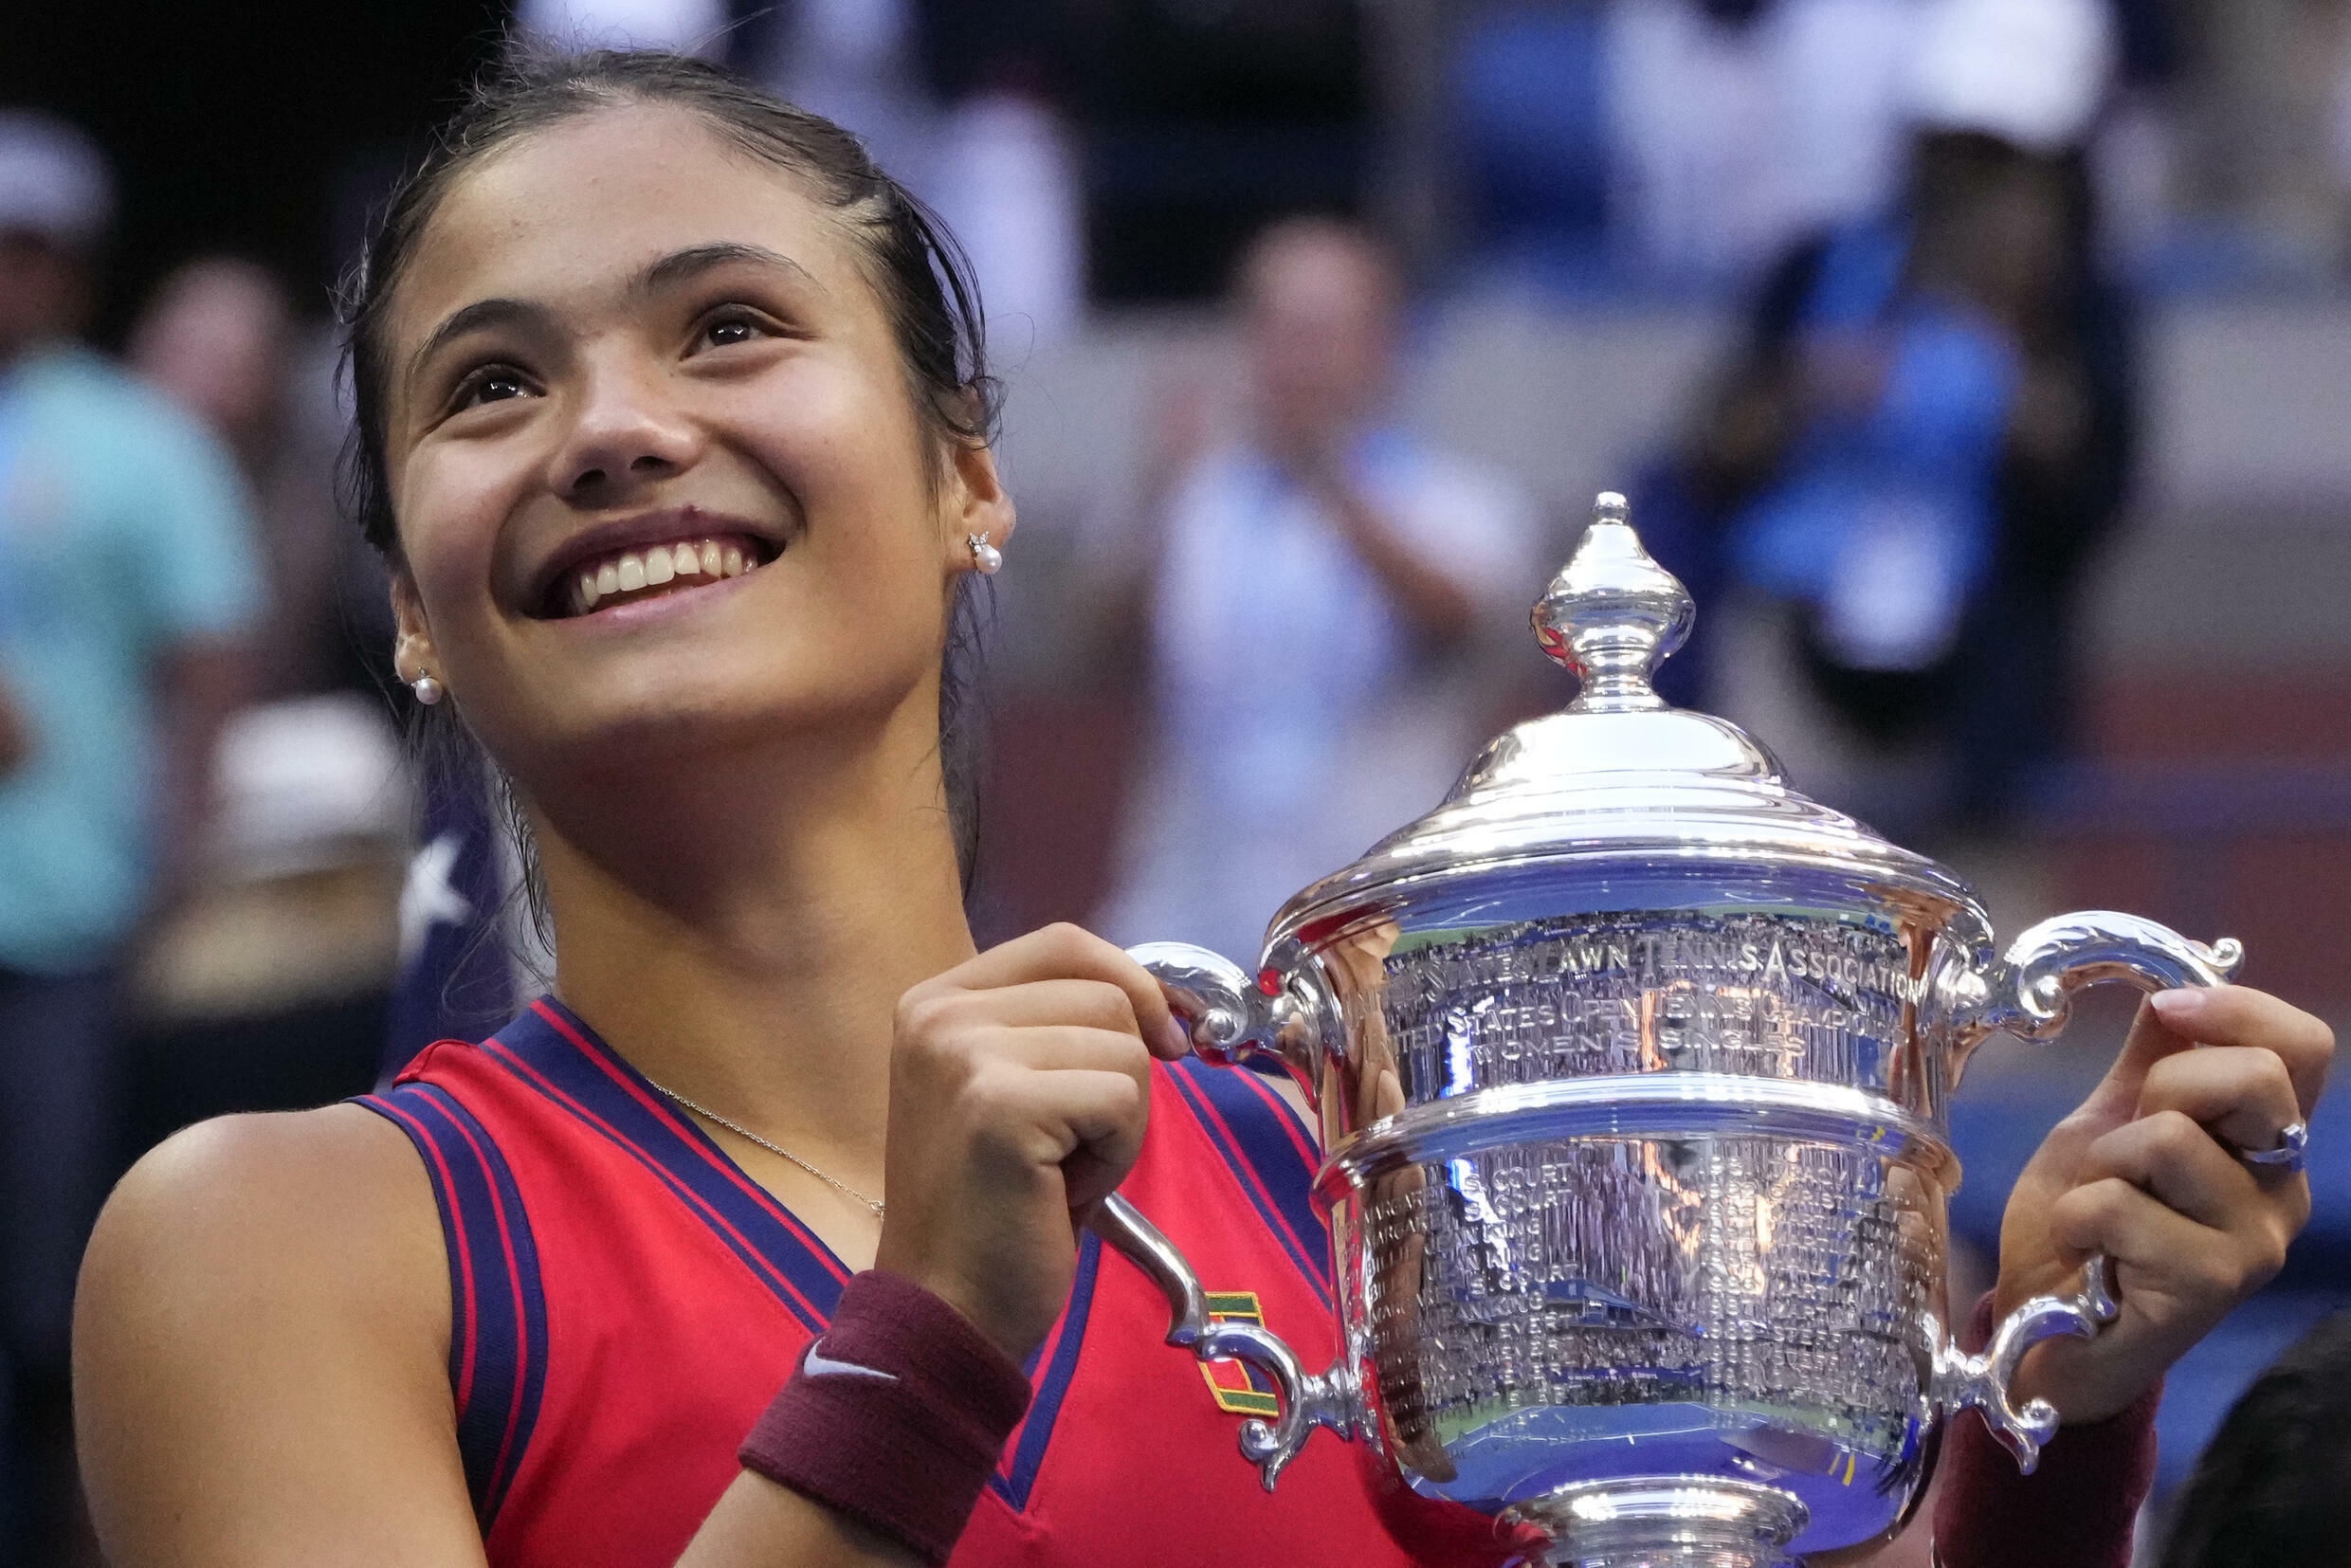 Winning smile: Britain's Emma Raducanu celebrates with the US Open trophy after becoming the first qualifier in history to win a Grand Slam